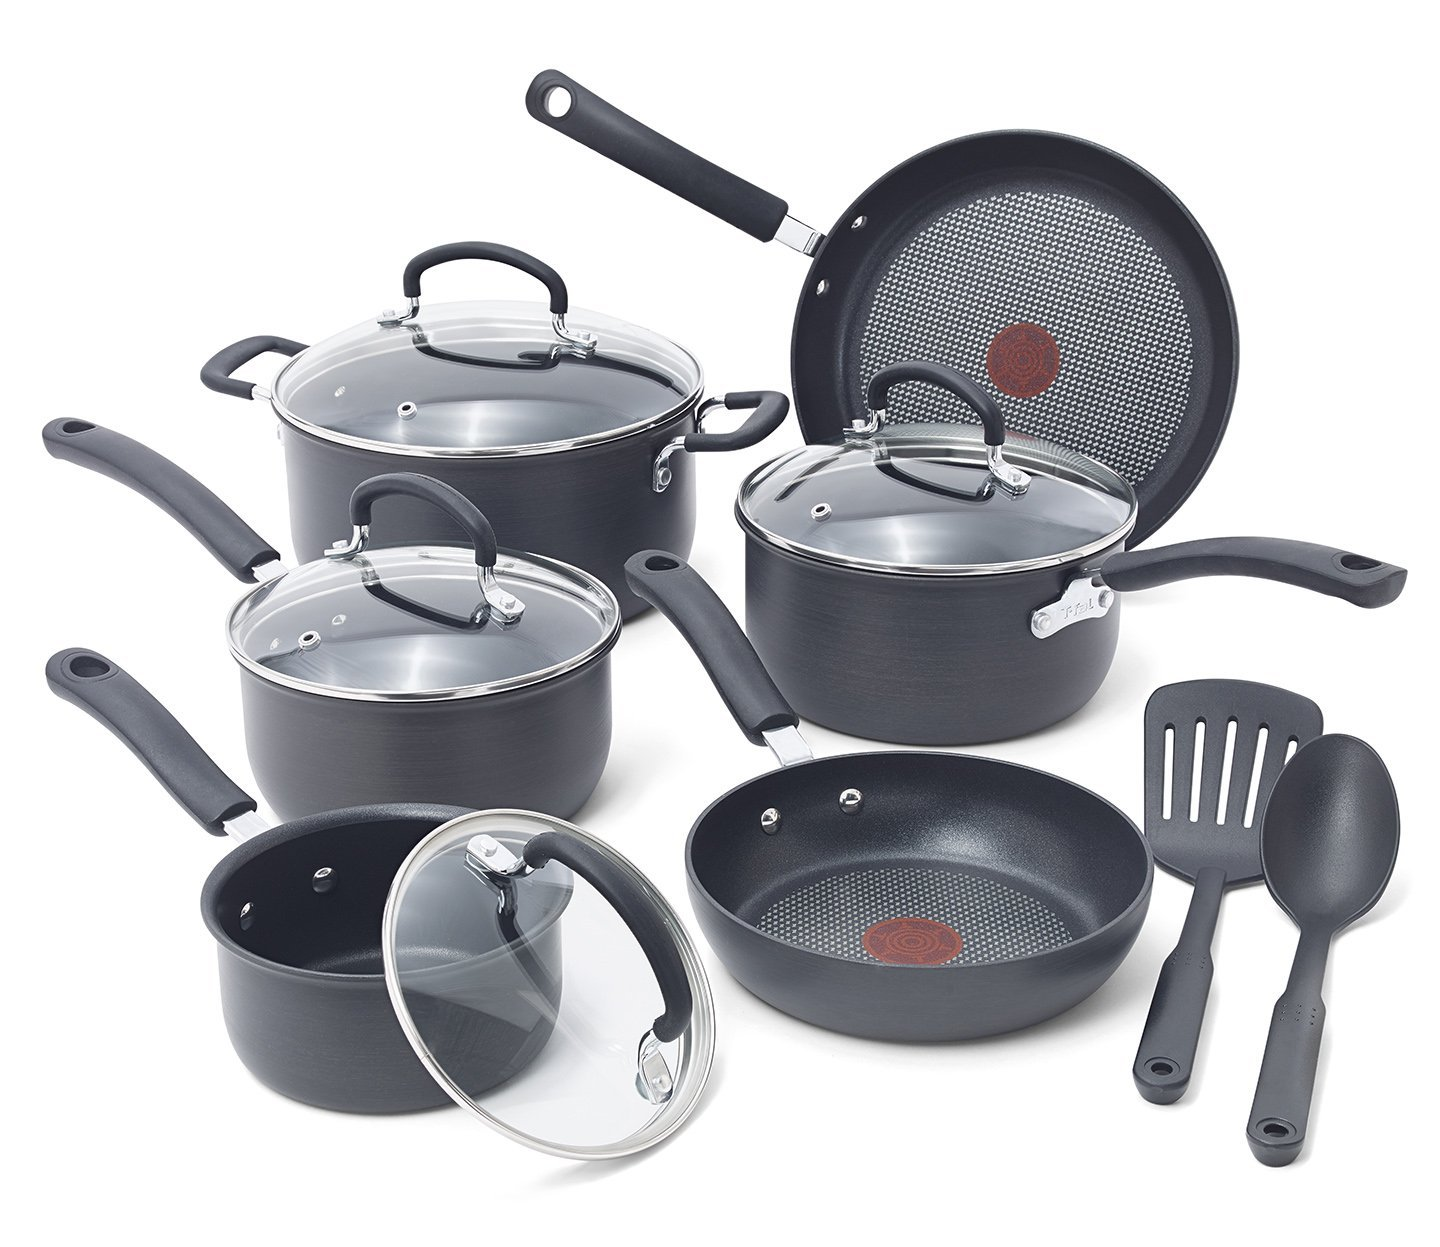 T Fal Ultimate Hard Anodized Cookware Review Worth A Buy